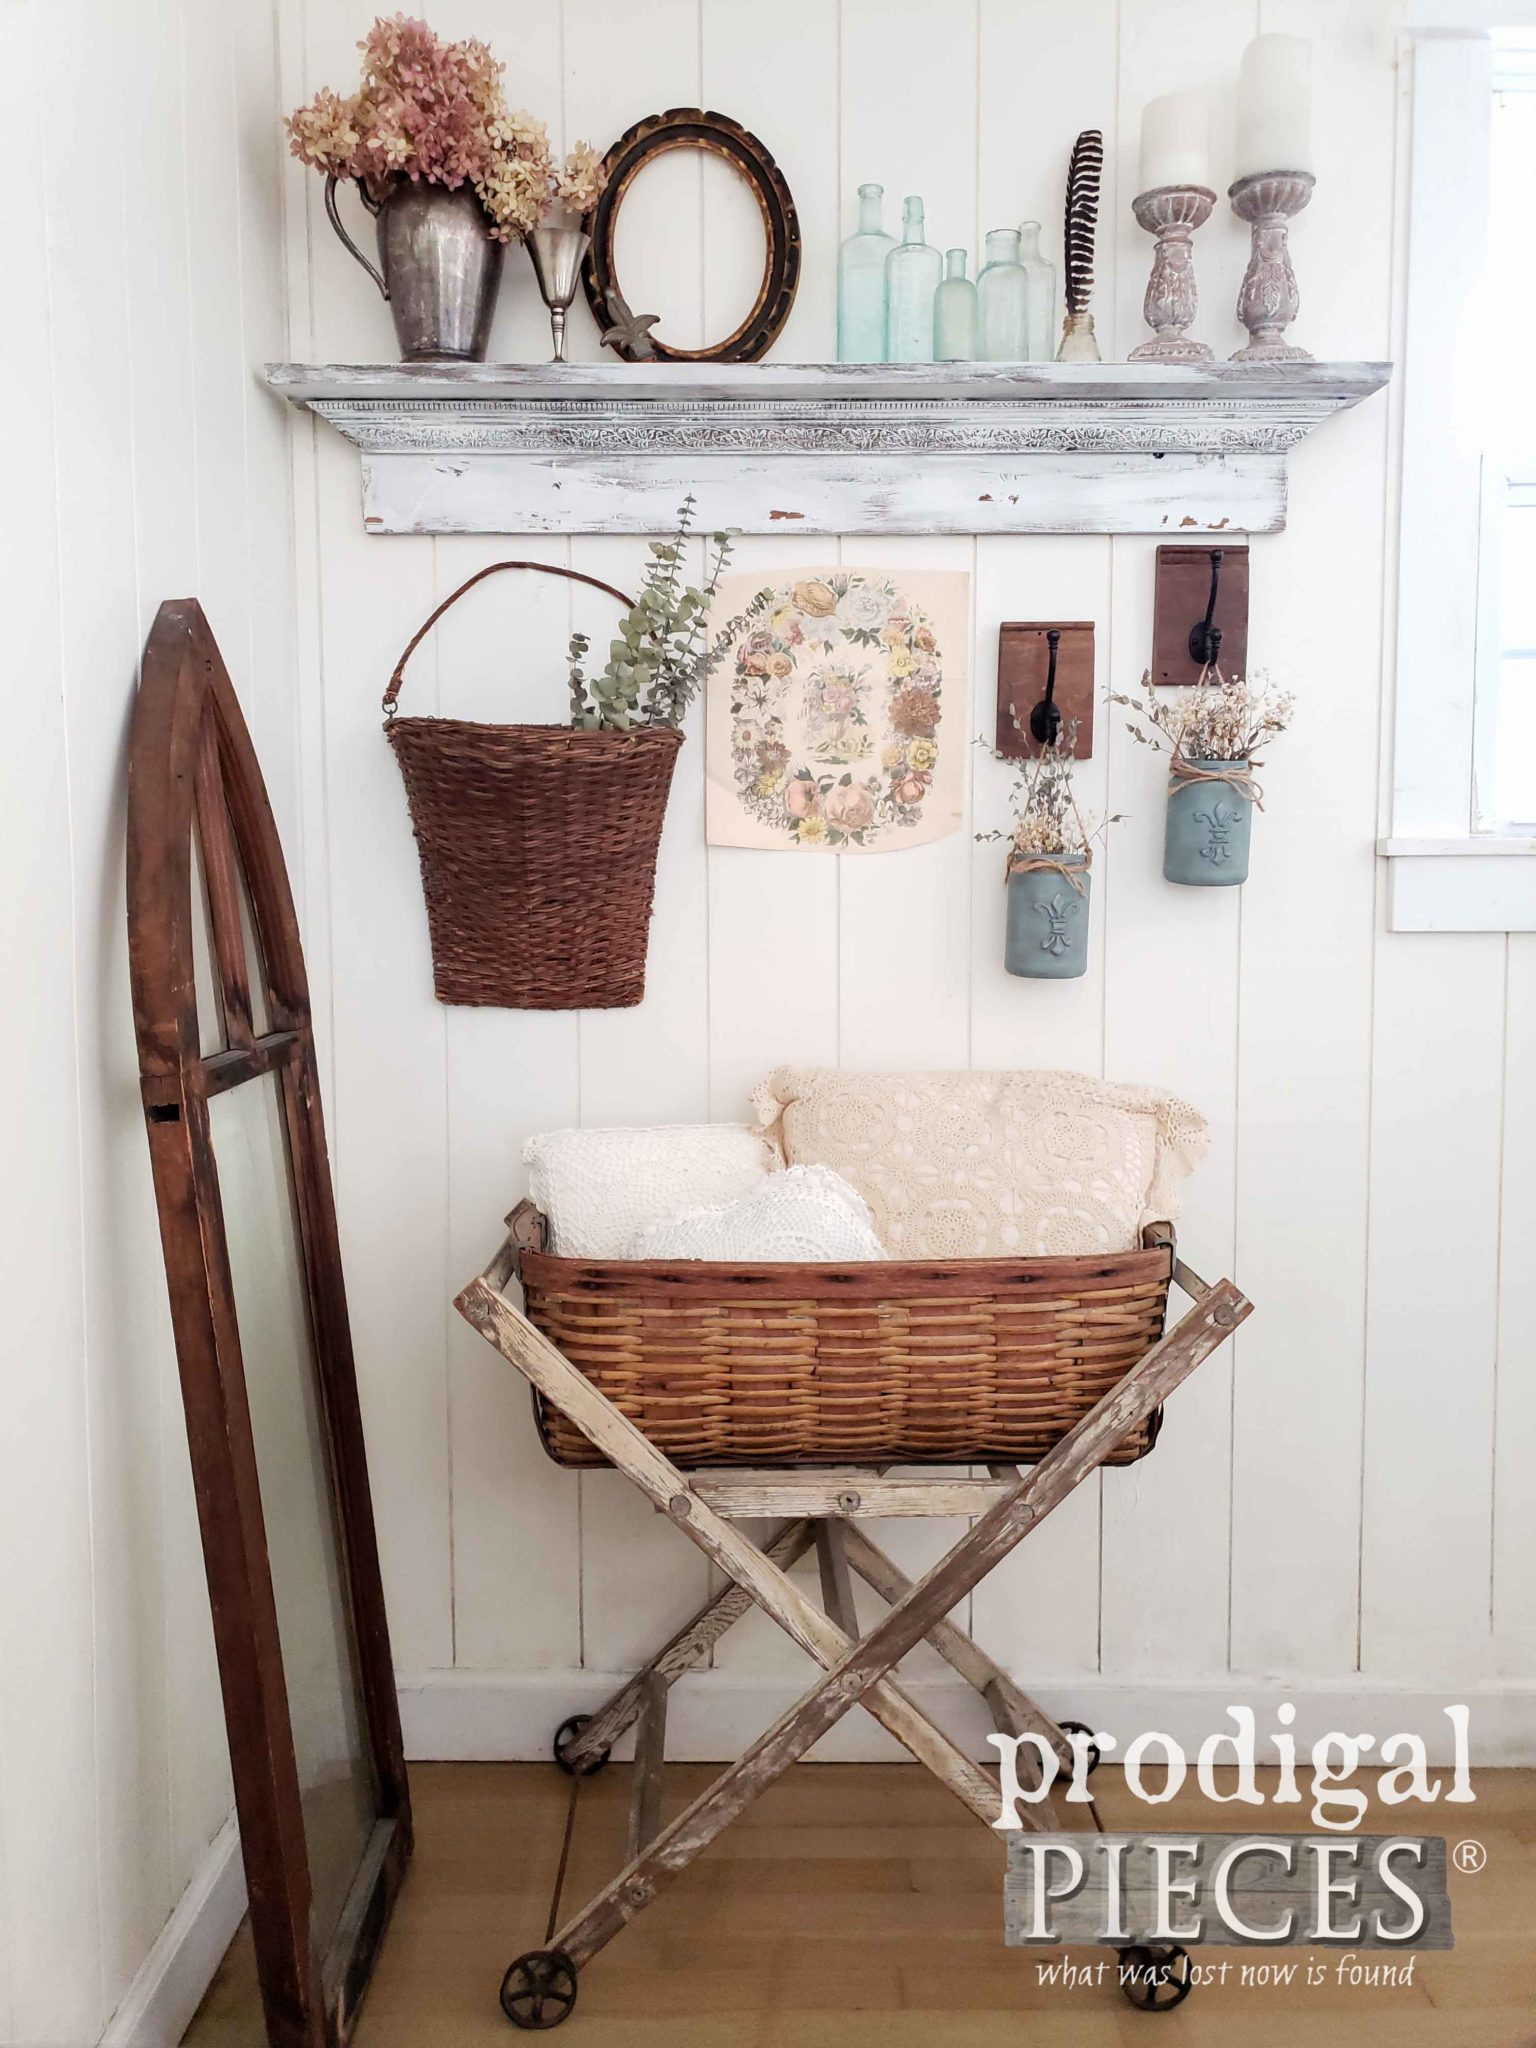 You can create this vintage vignette too! Farmhouse Style Decor Ideas at Prodigal Pieces | prodigalpieces.com